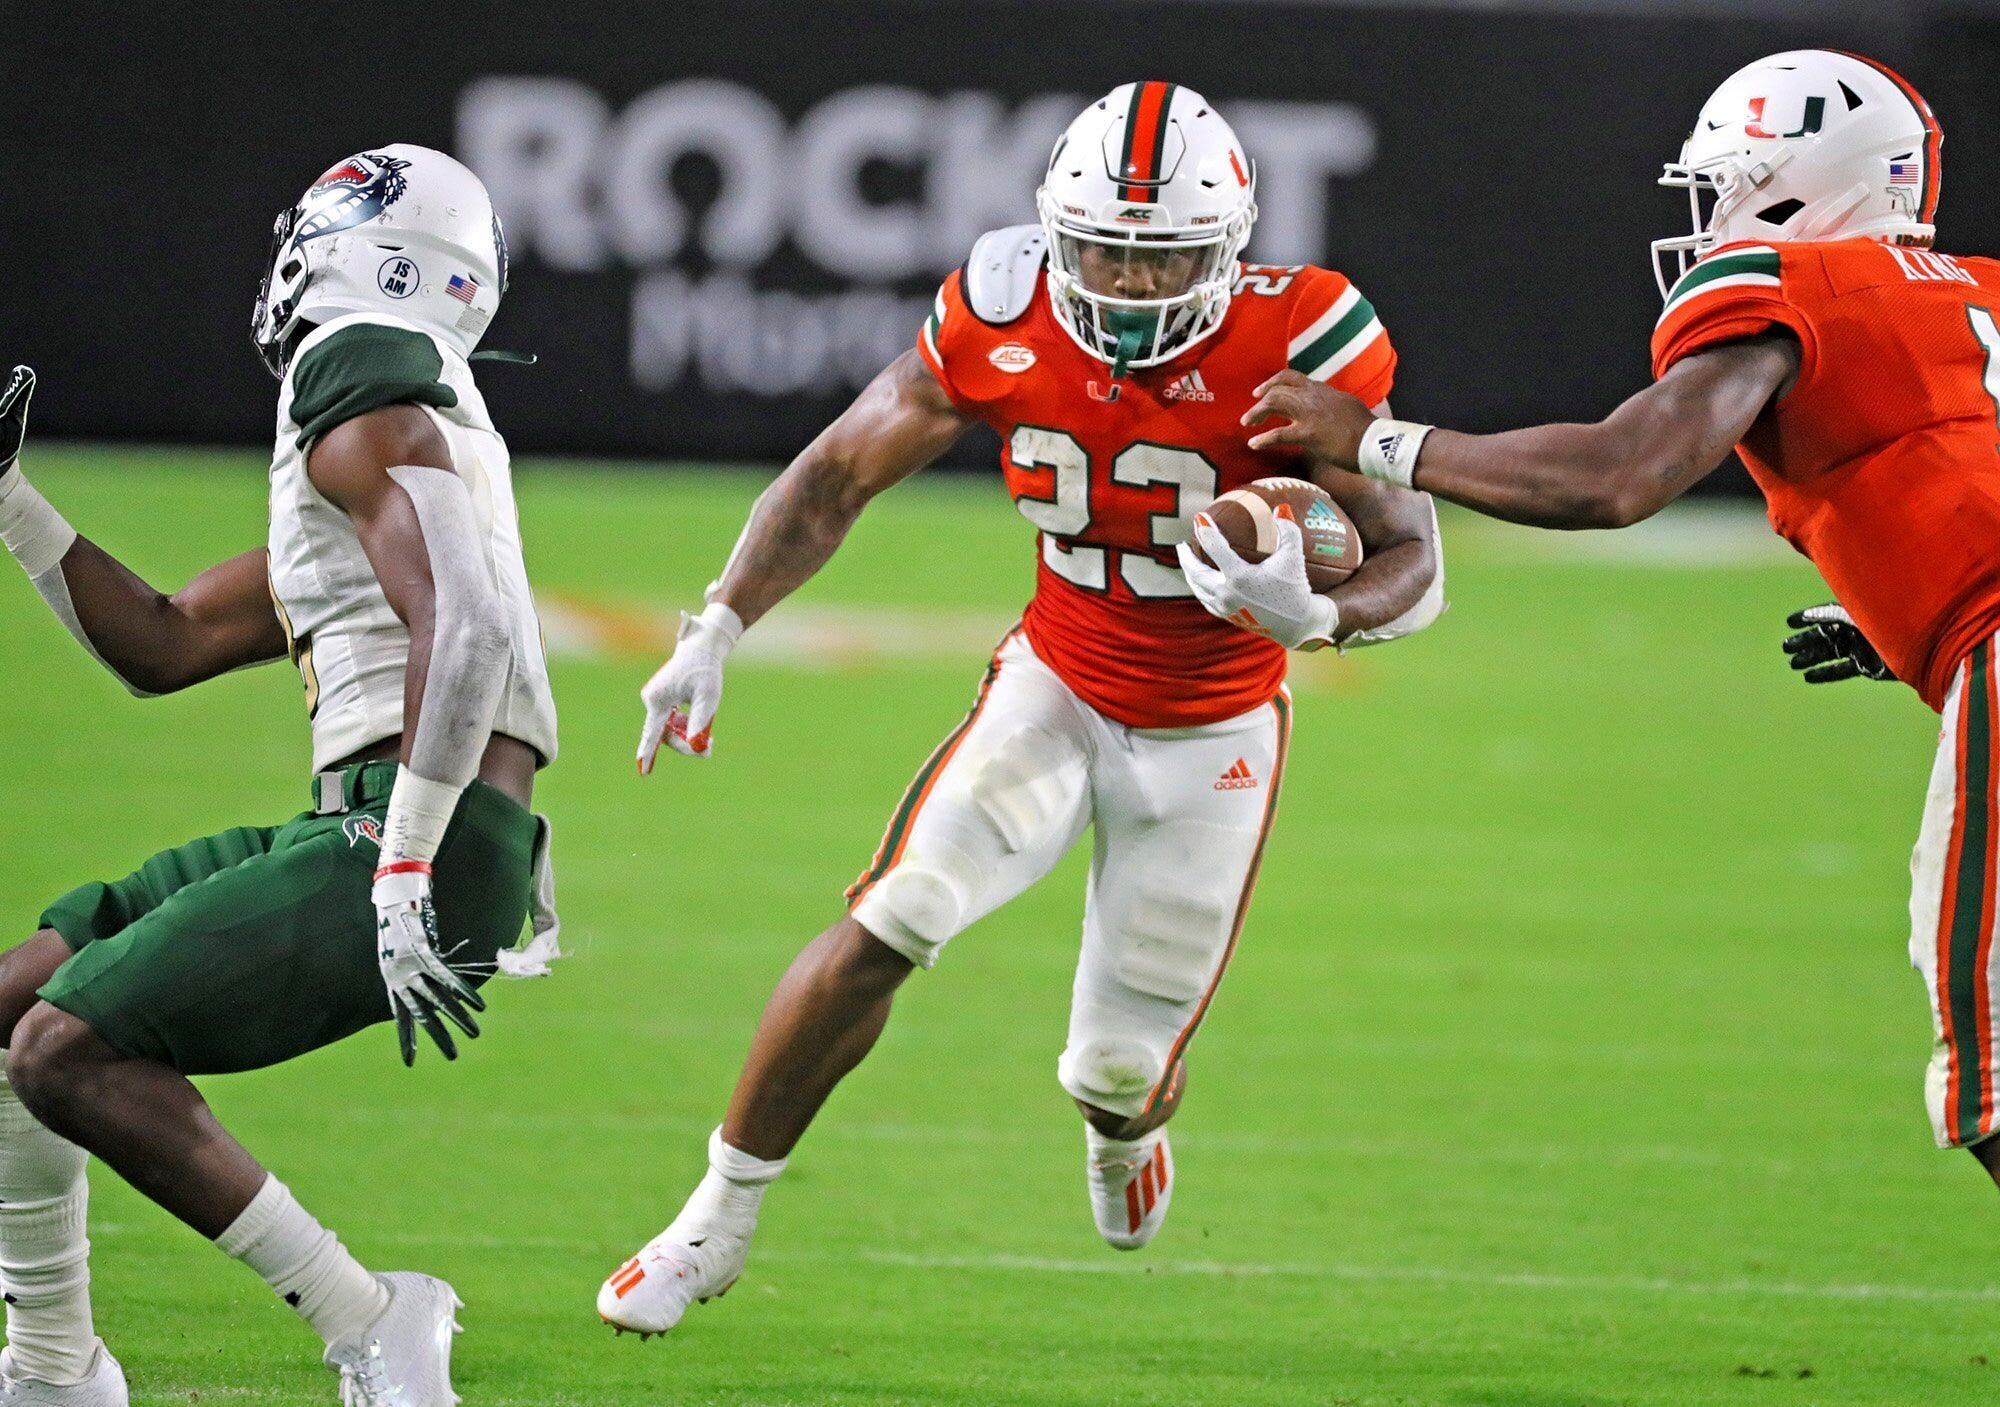 Miami and Central Florida rise in the latest Amway Coaches Poll